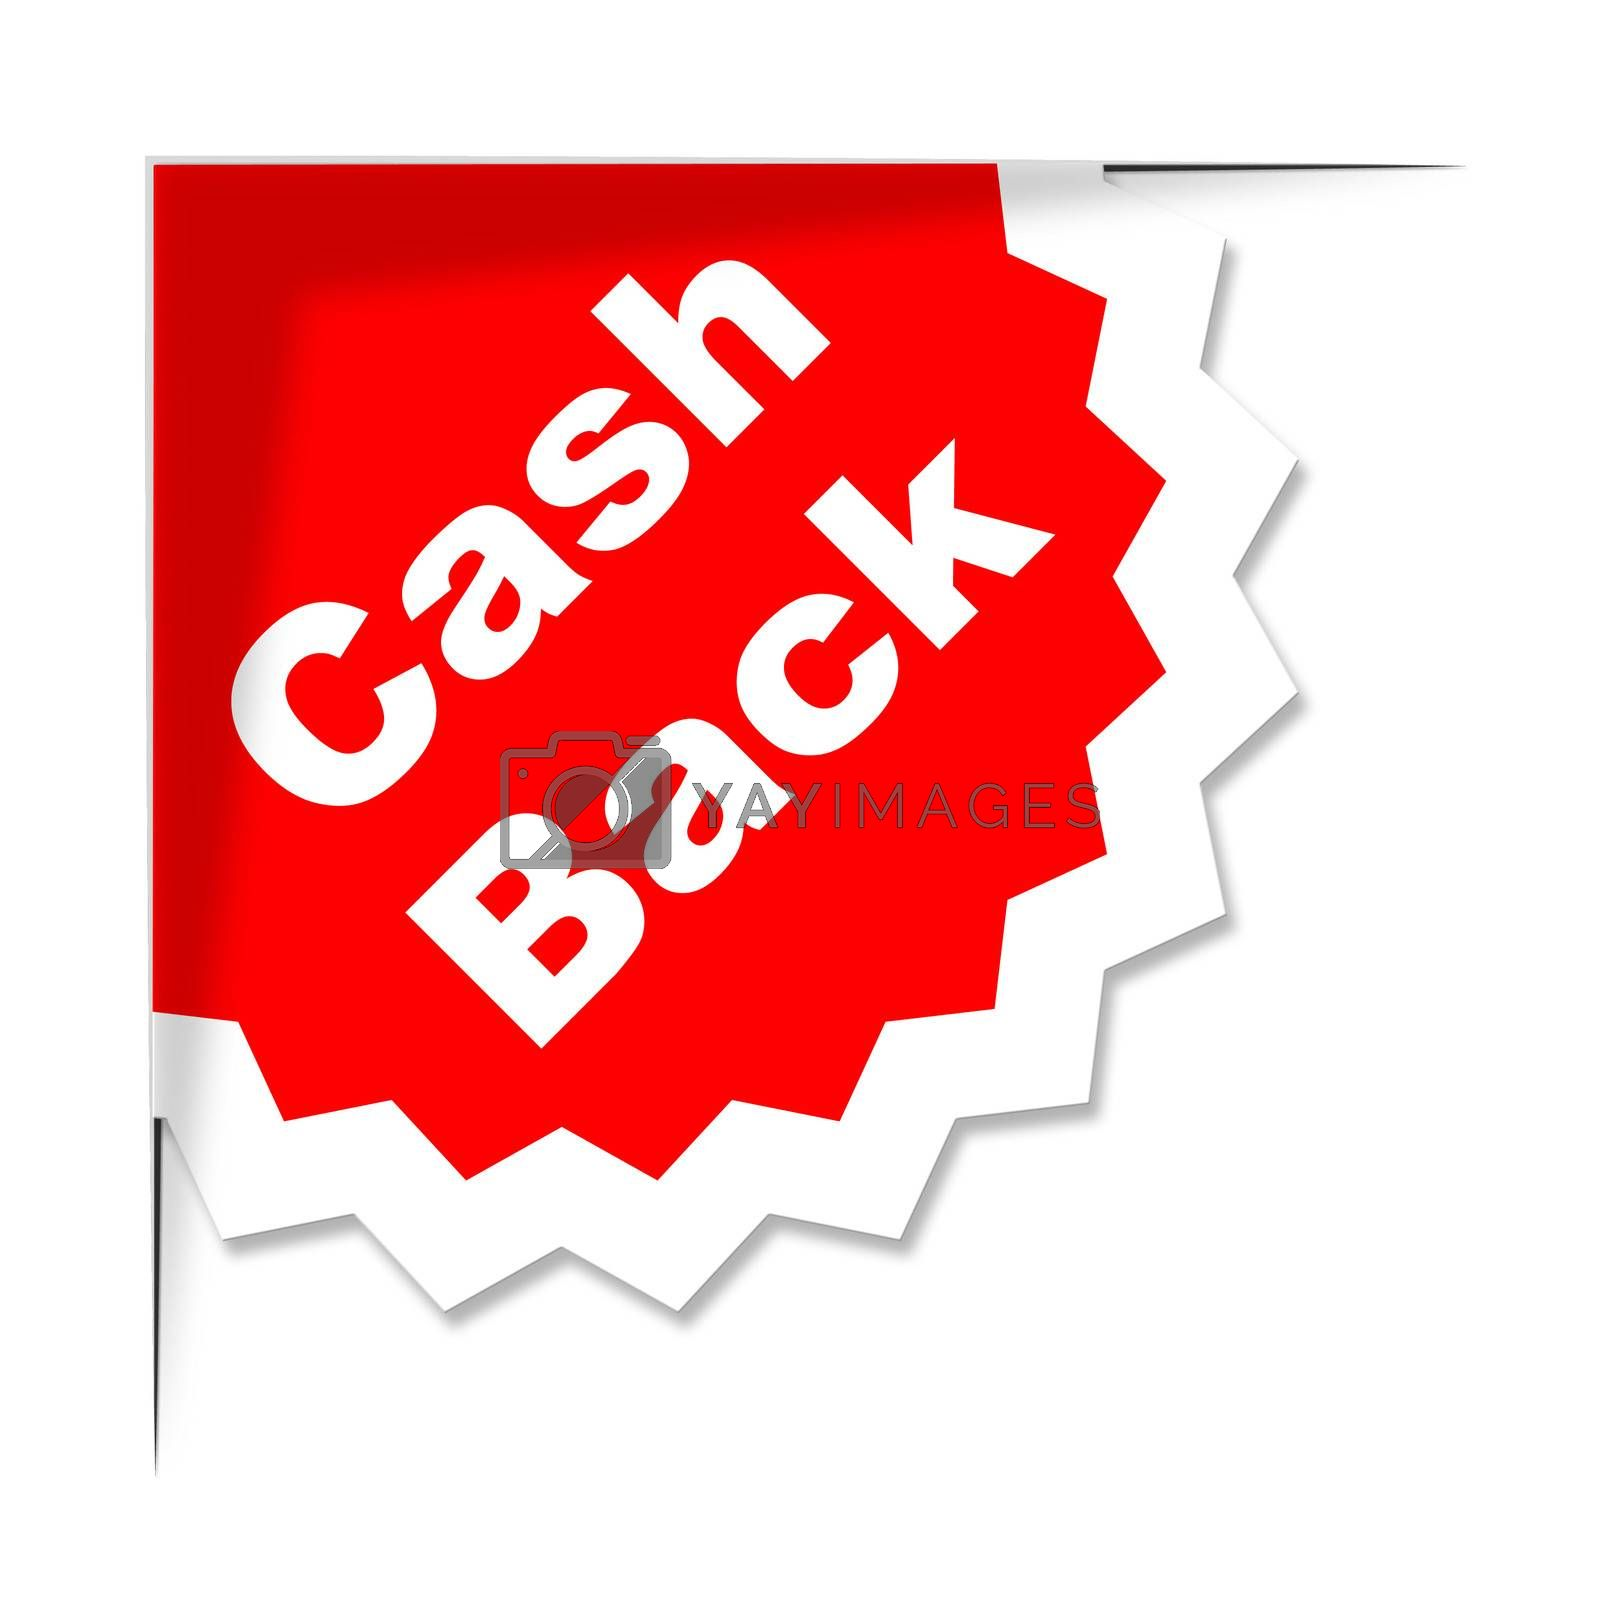 Cash Back Shows Sale Promotion And Offer by stuartmiles